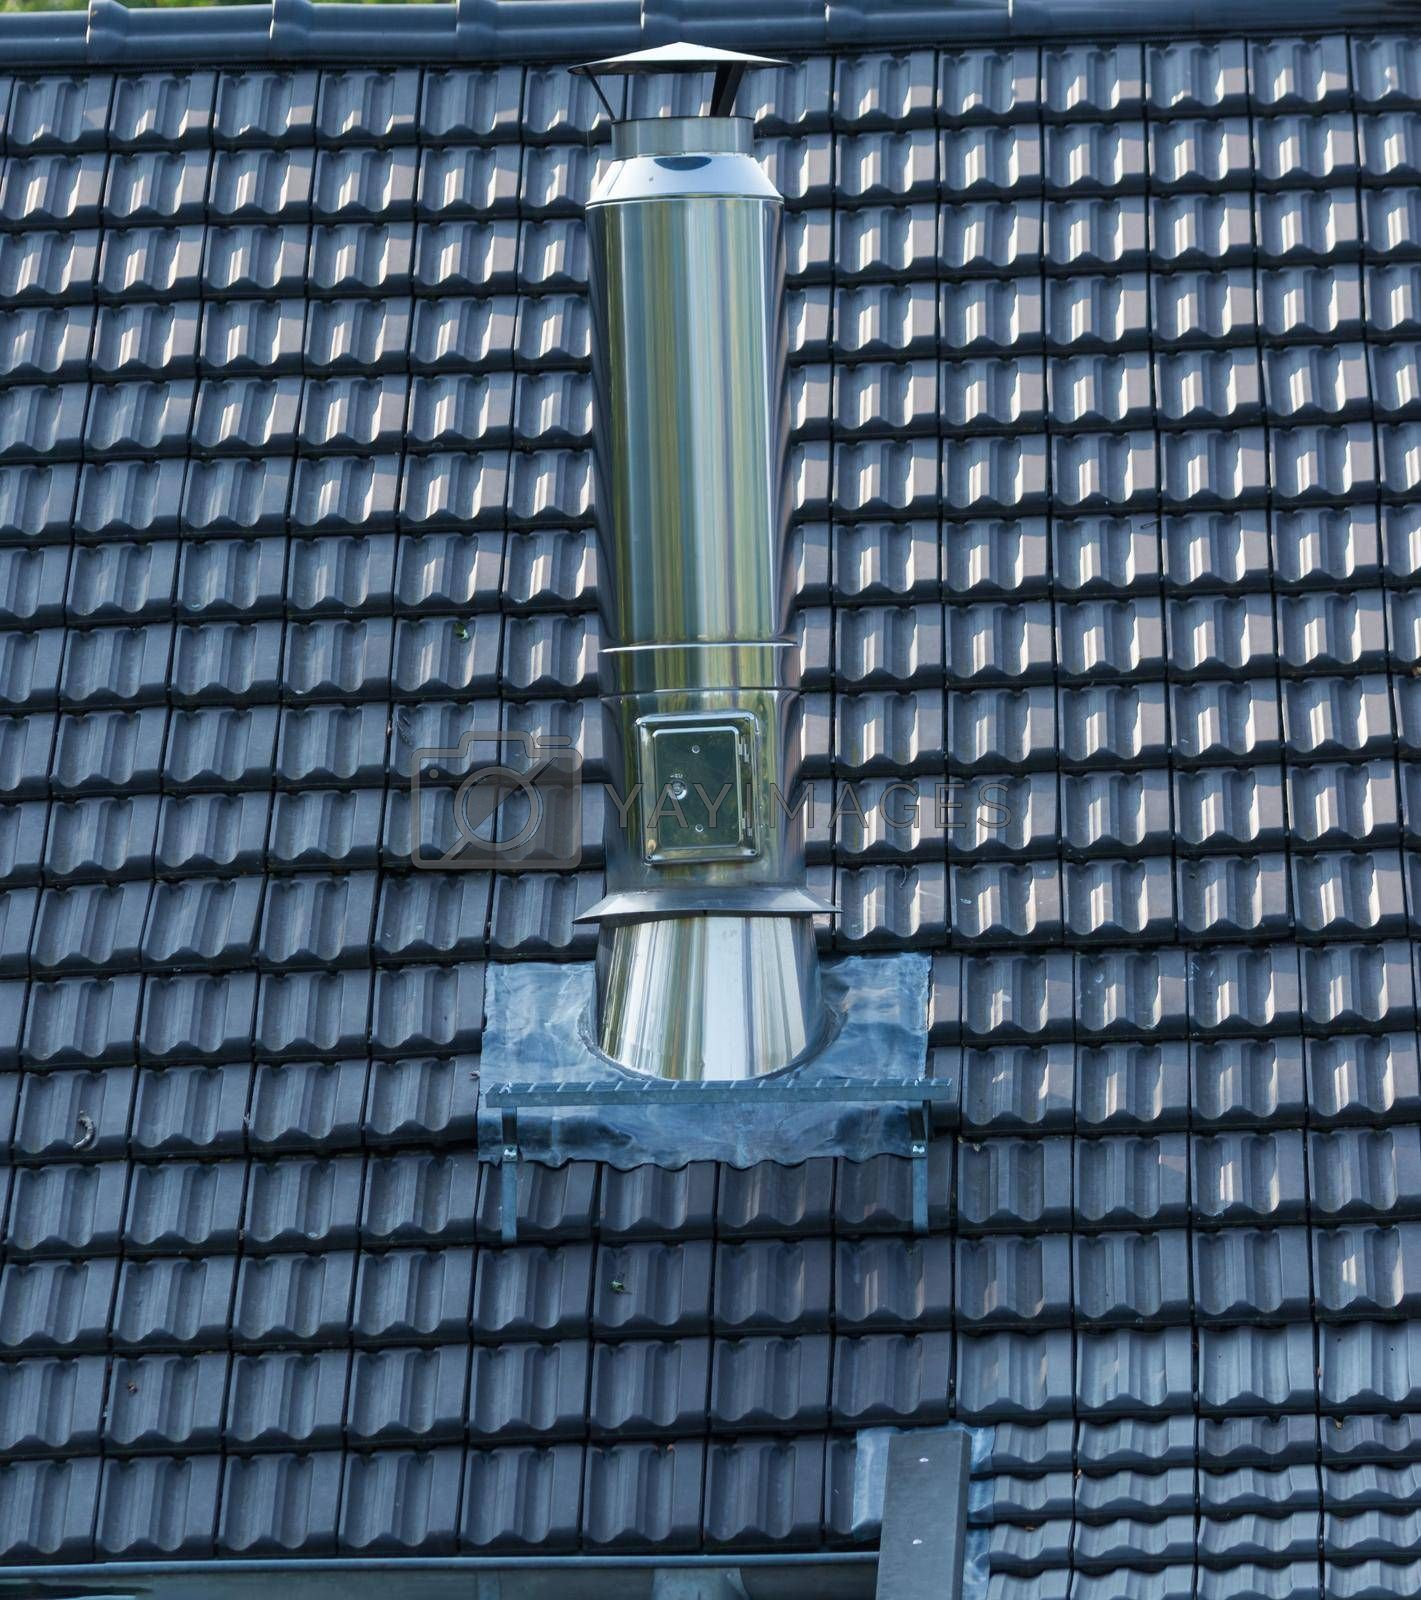 Royalty free image of Chimney or stainless steel fireplace      by JFsPic